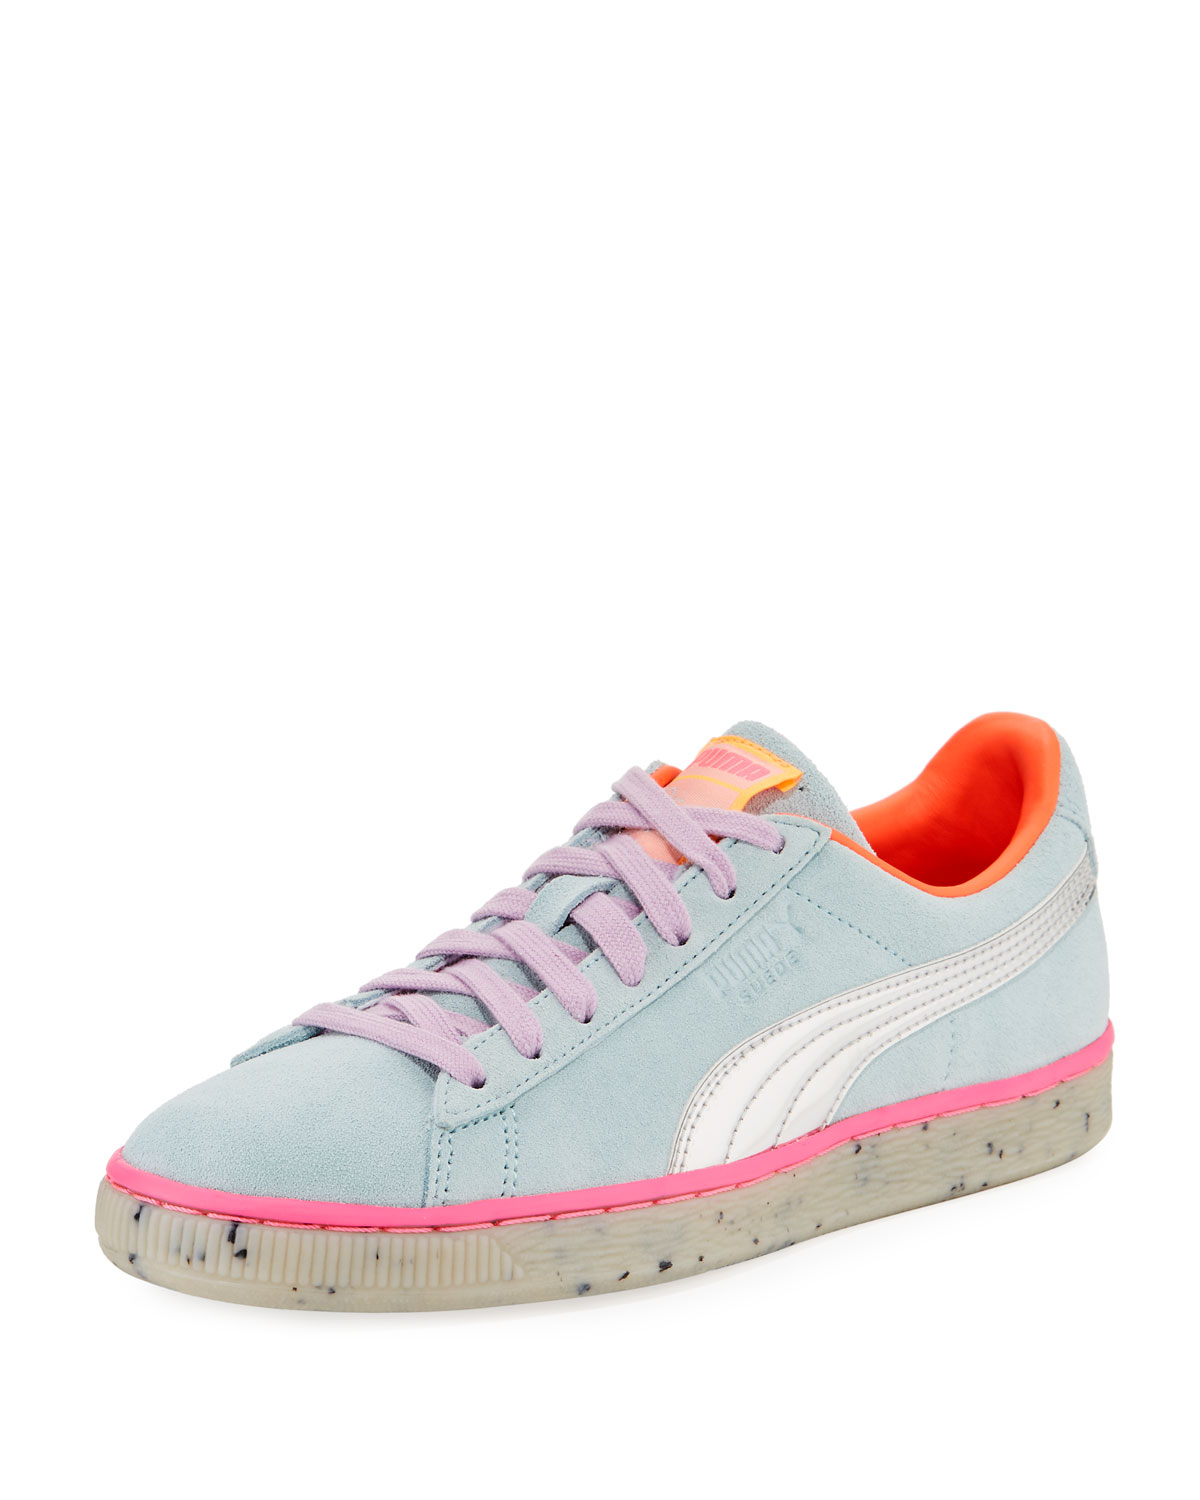 PUMA X SOPHIA WEBSTER CANDY PRINCESS SUEDE SNEAKERS 3bbe99d3f